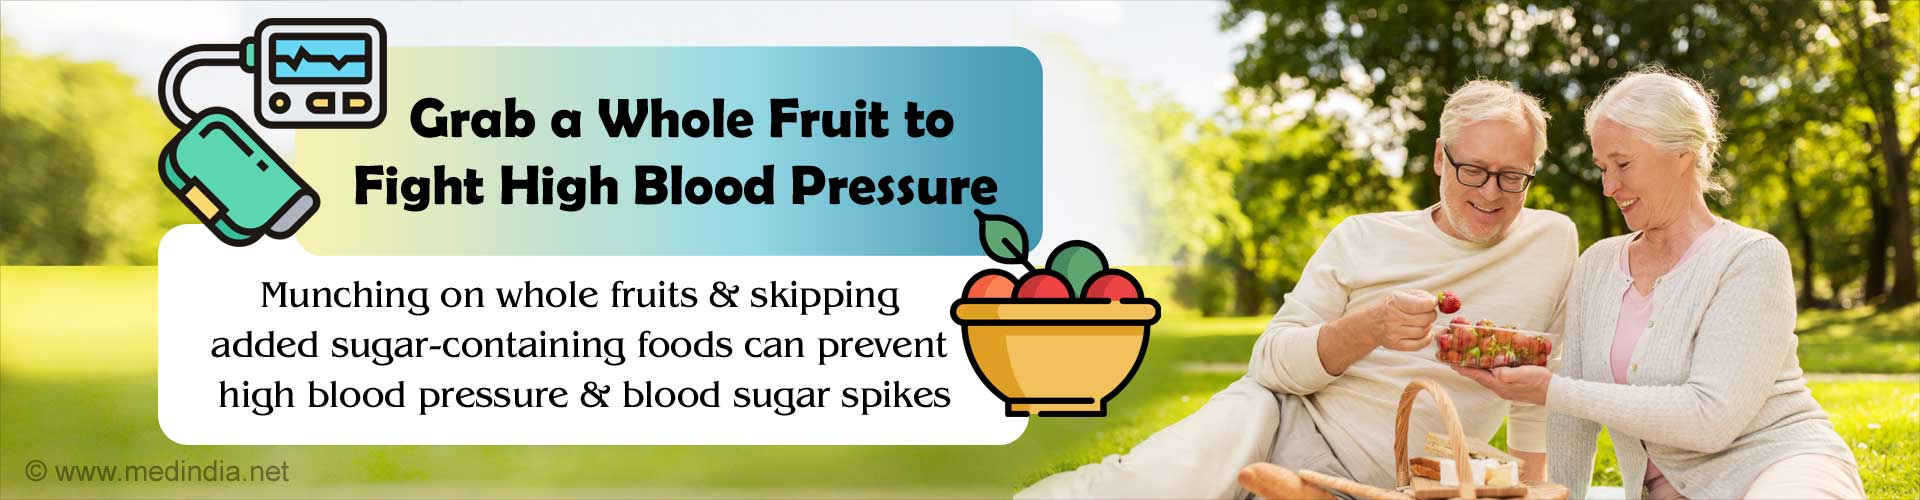 Whole Fruits can Control Your Blood Pressure